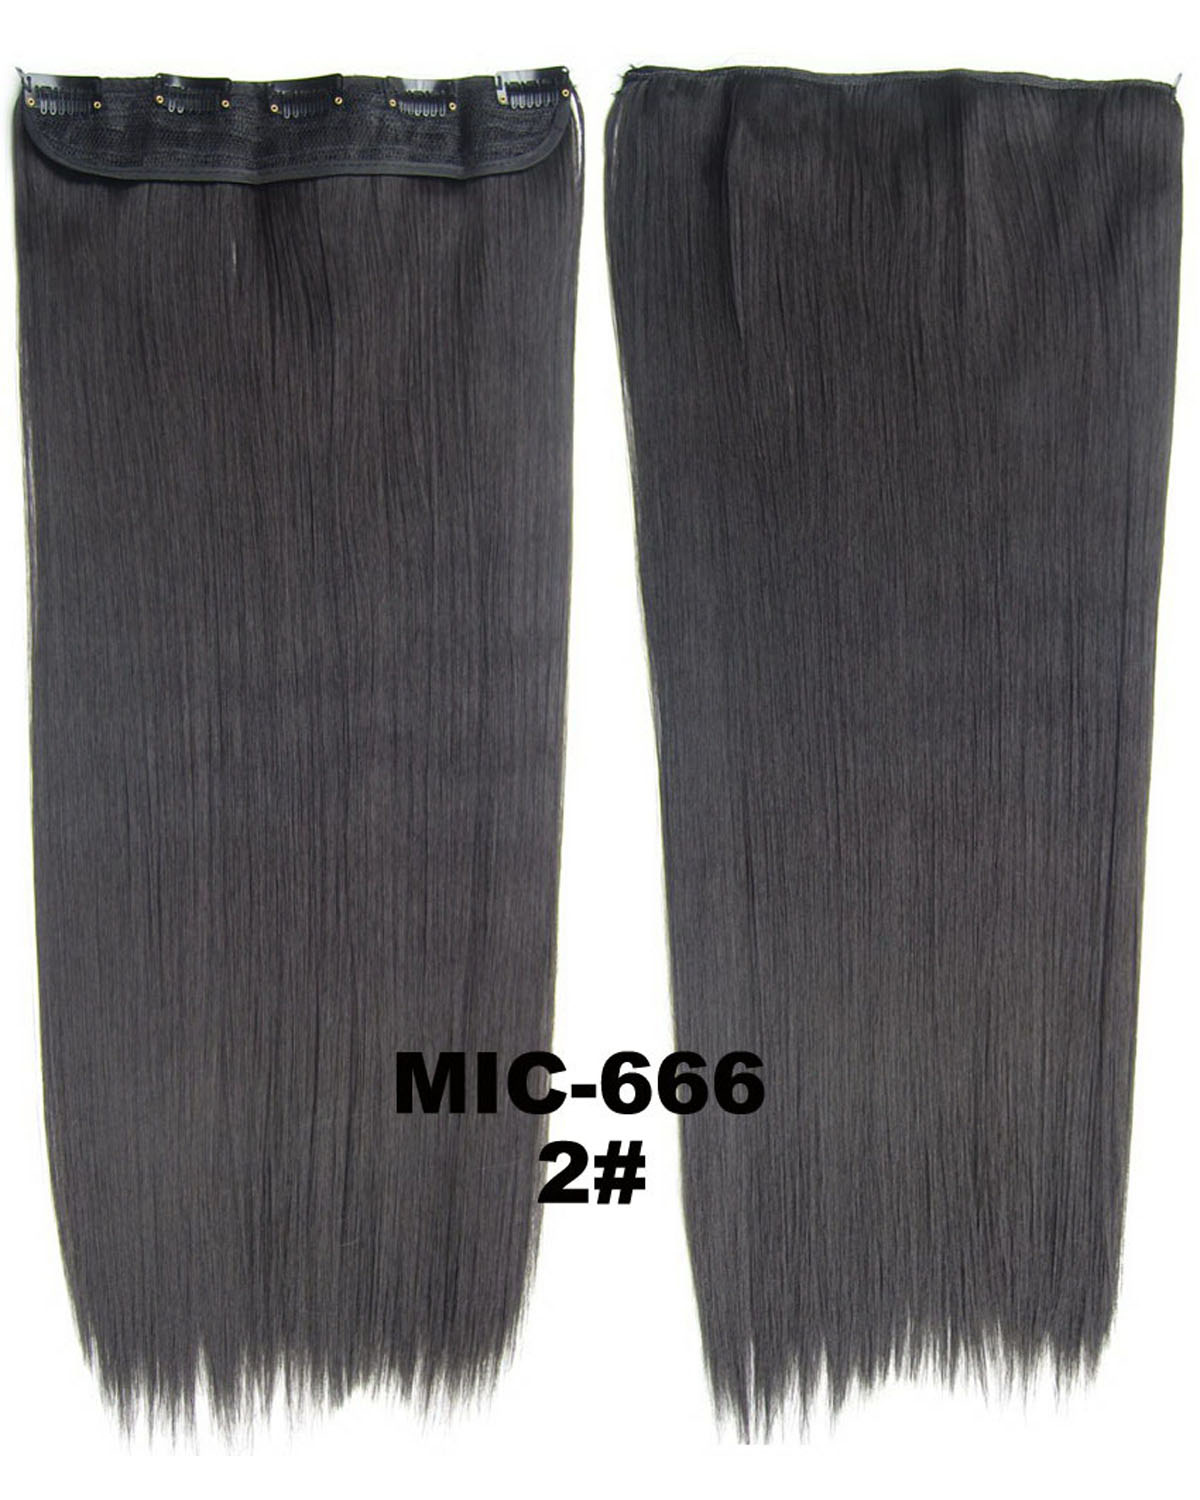 24 inch Superb Straight Long One Piece 5 Clips Clip in Synthetic Hair Extension 2# 100g